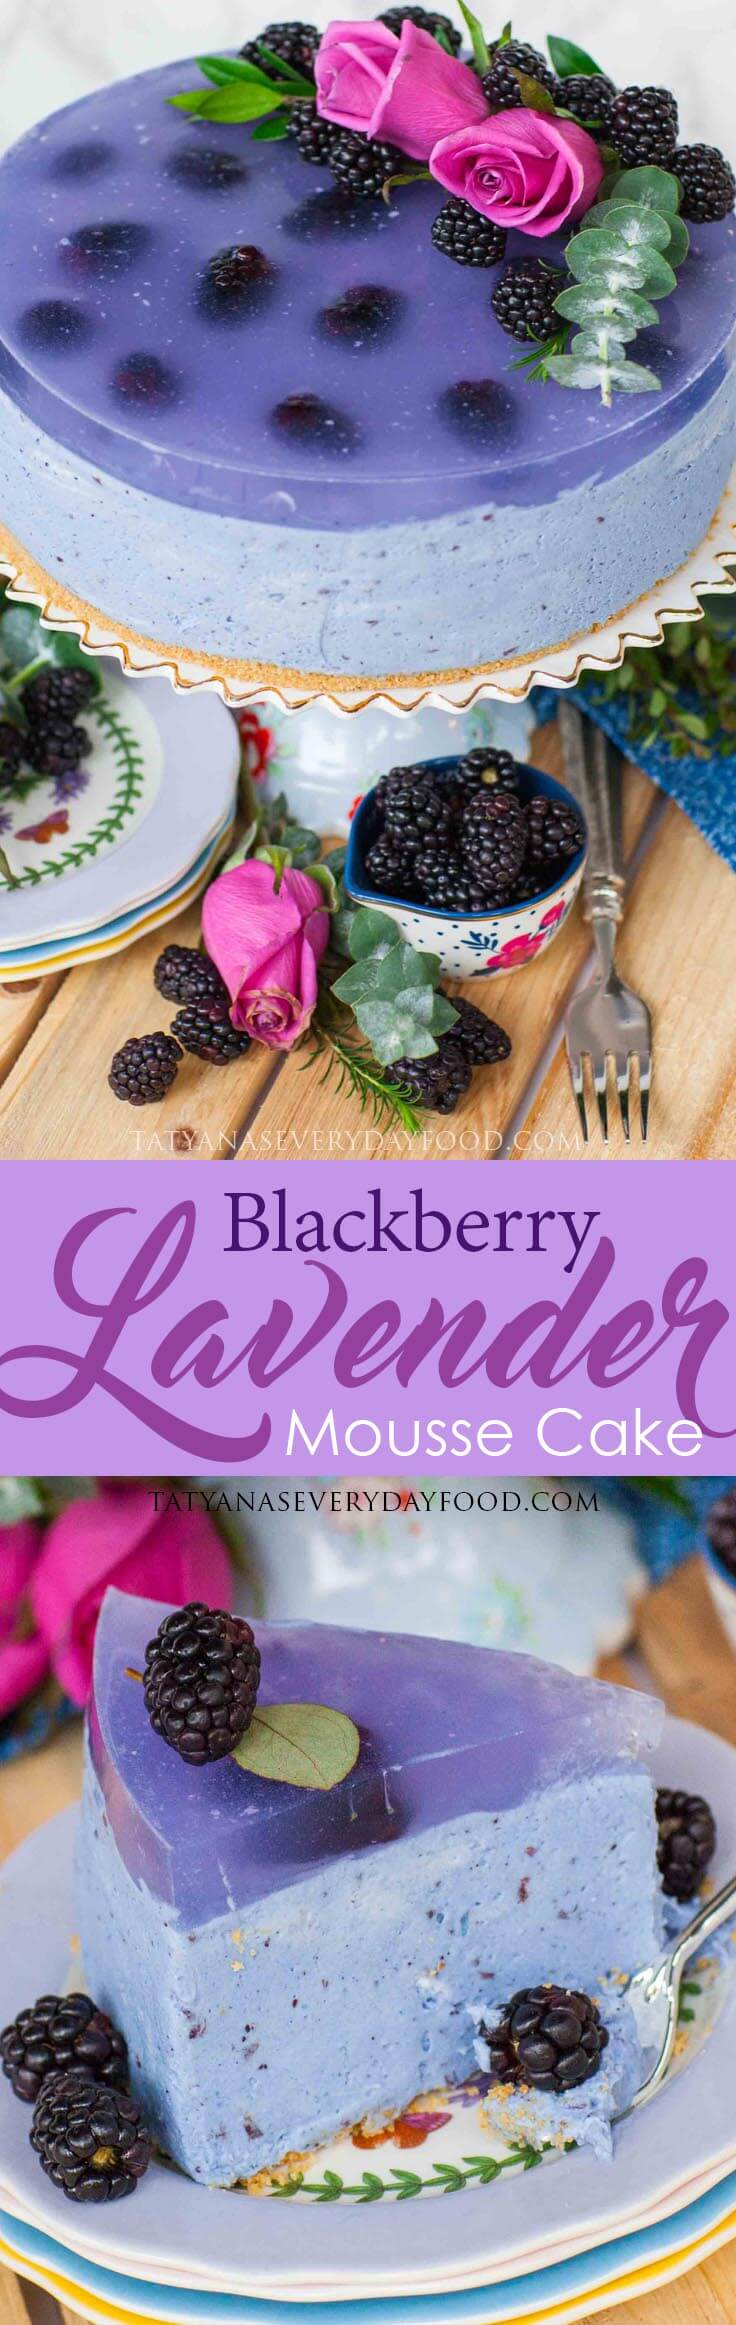 No-Bake Blackberry Lavender Mousse Cake recipe with video